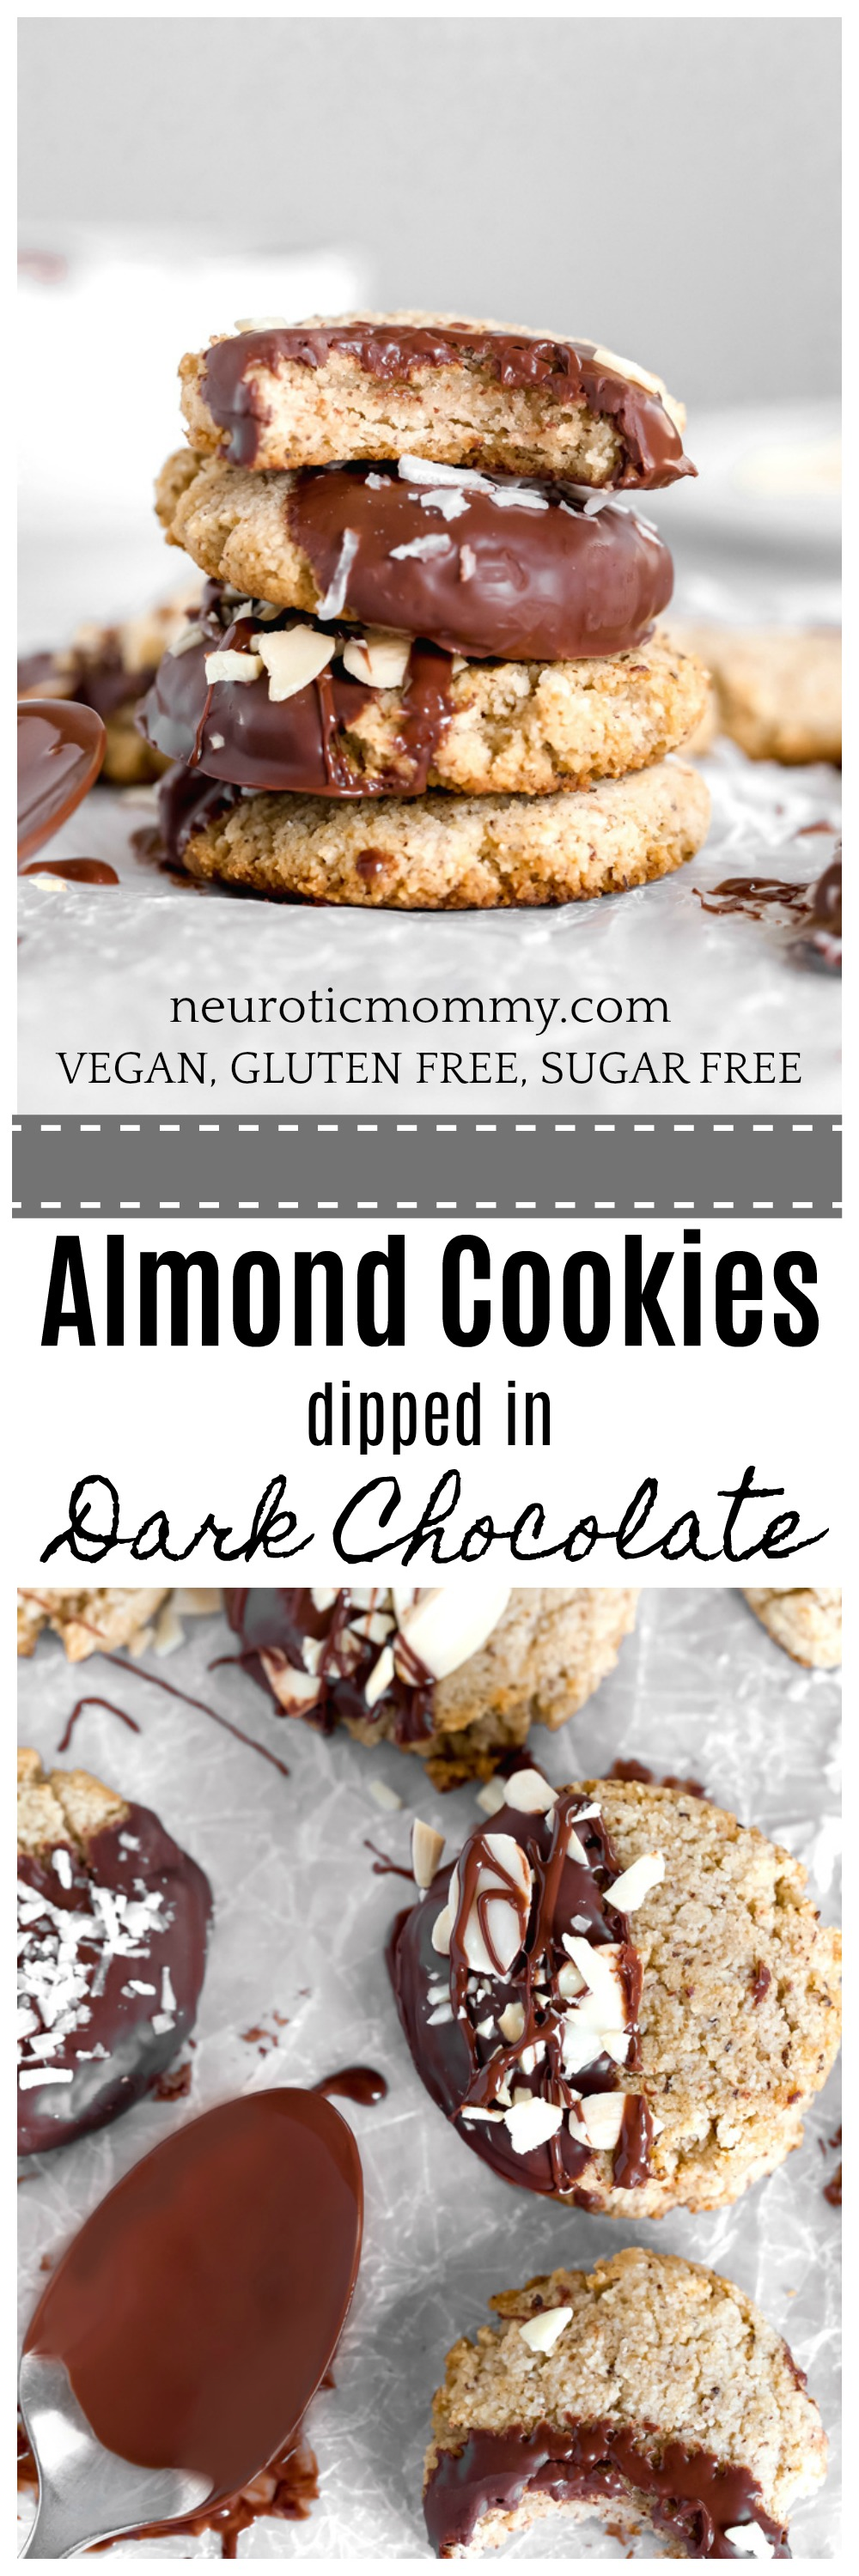 Almond Cookies Dipped in Dark Chocolate (Vegan - Sugar Free) - Where chewy cookies meet dark chocolate for an awesomely sweet sugar free snack you can feel good about! NeuroticMommy.com #vegan #sugarfree #glutenfree